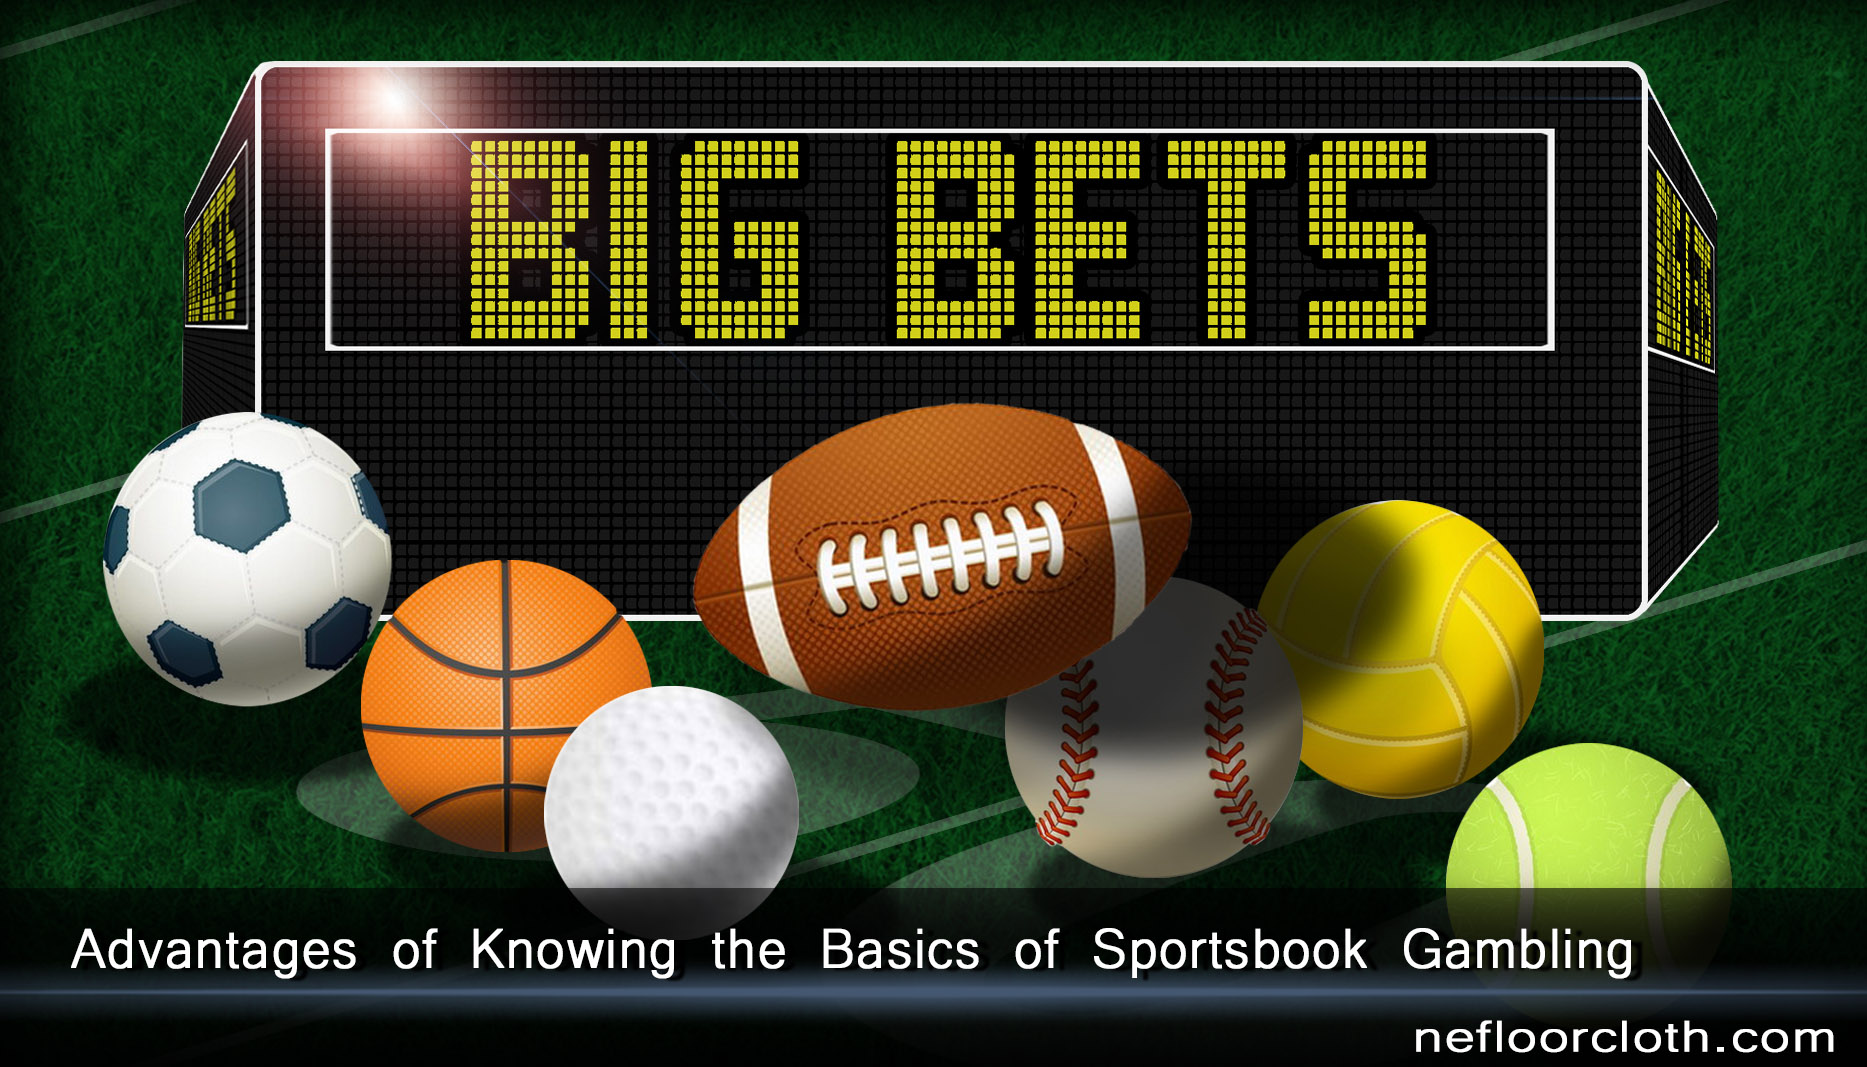 Advantages of Knowing the Basics of Sportsbook Gambling